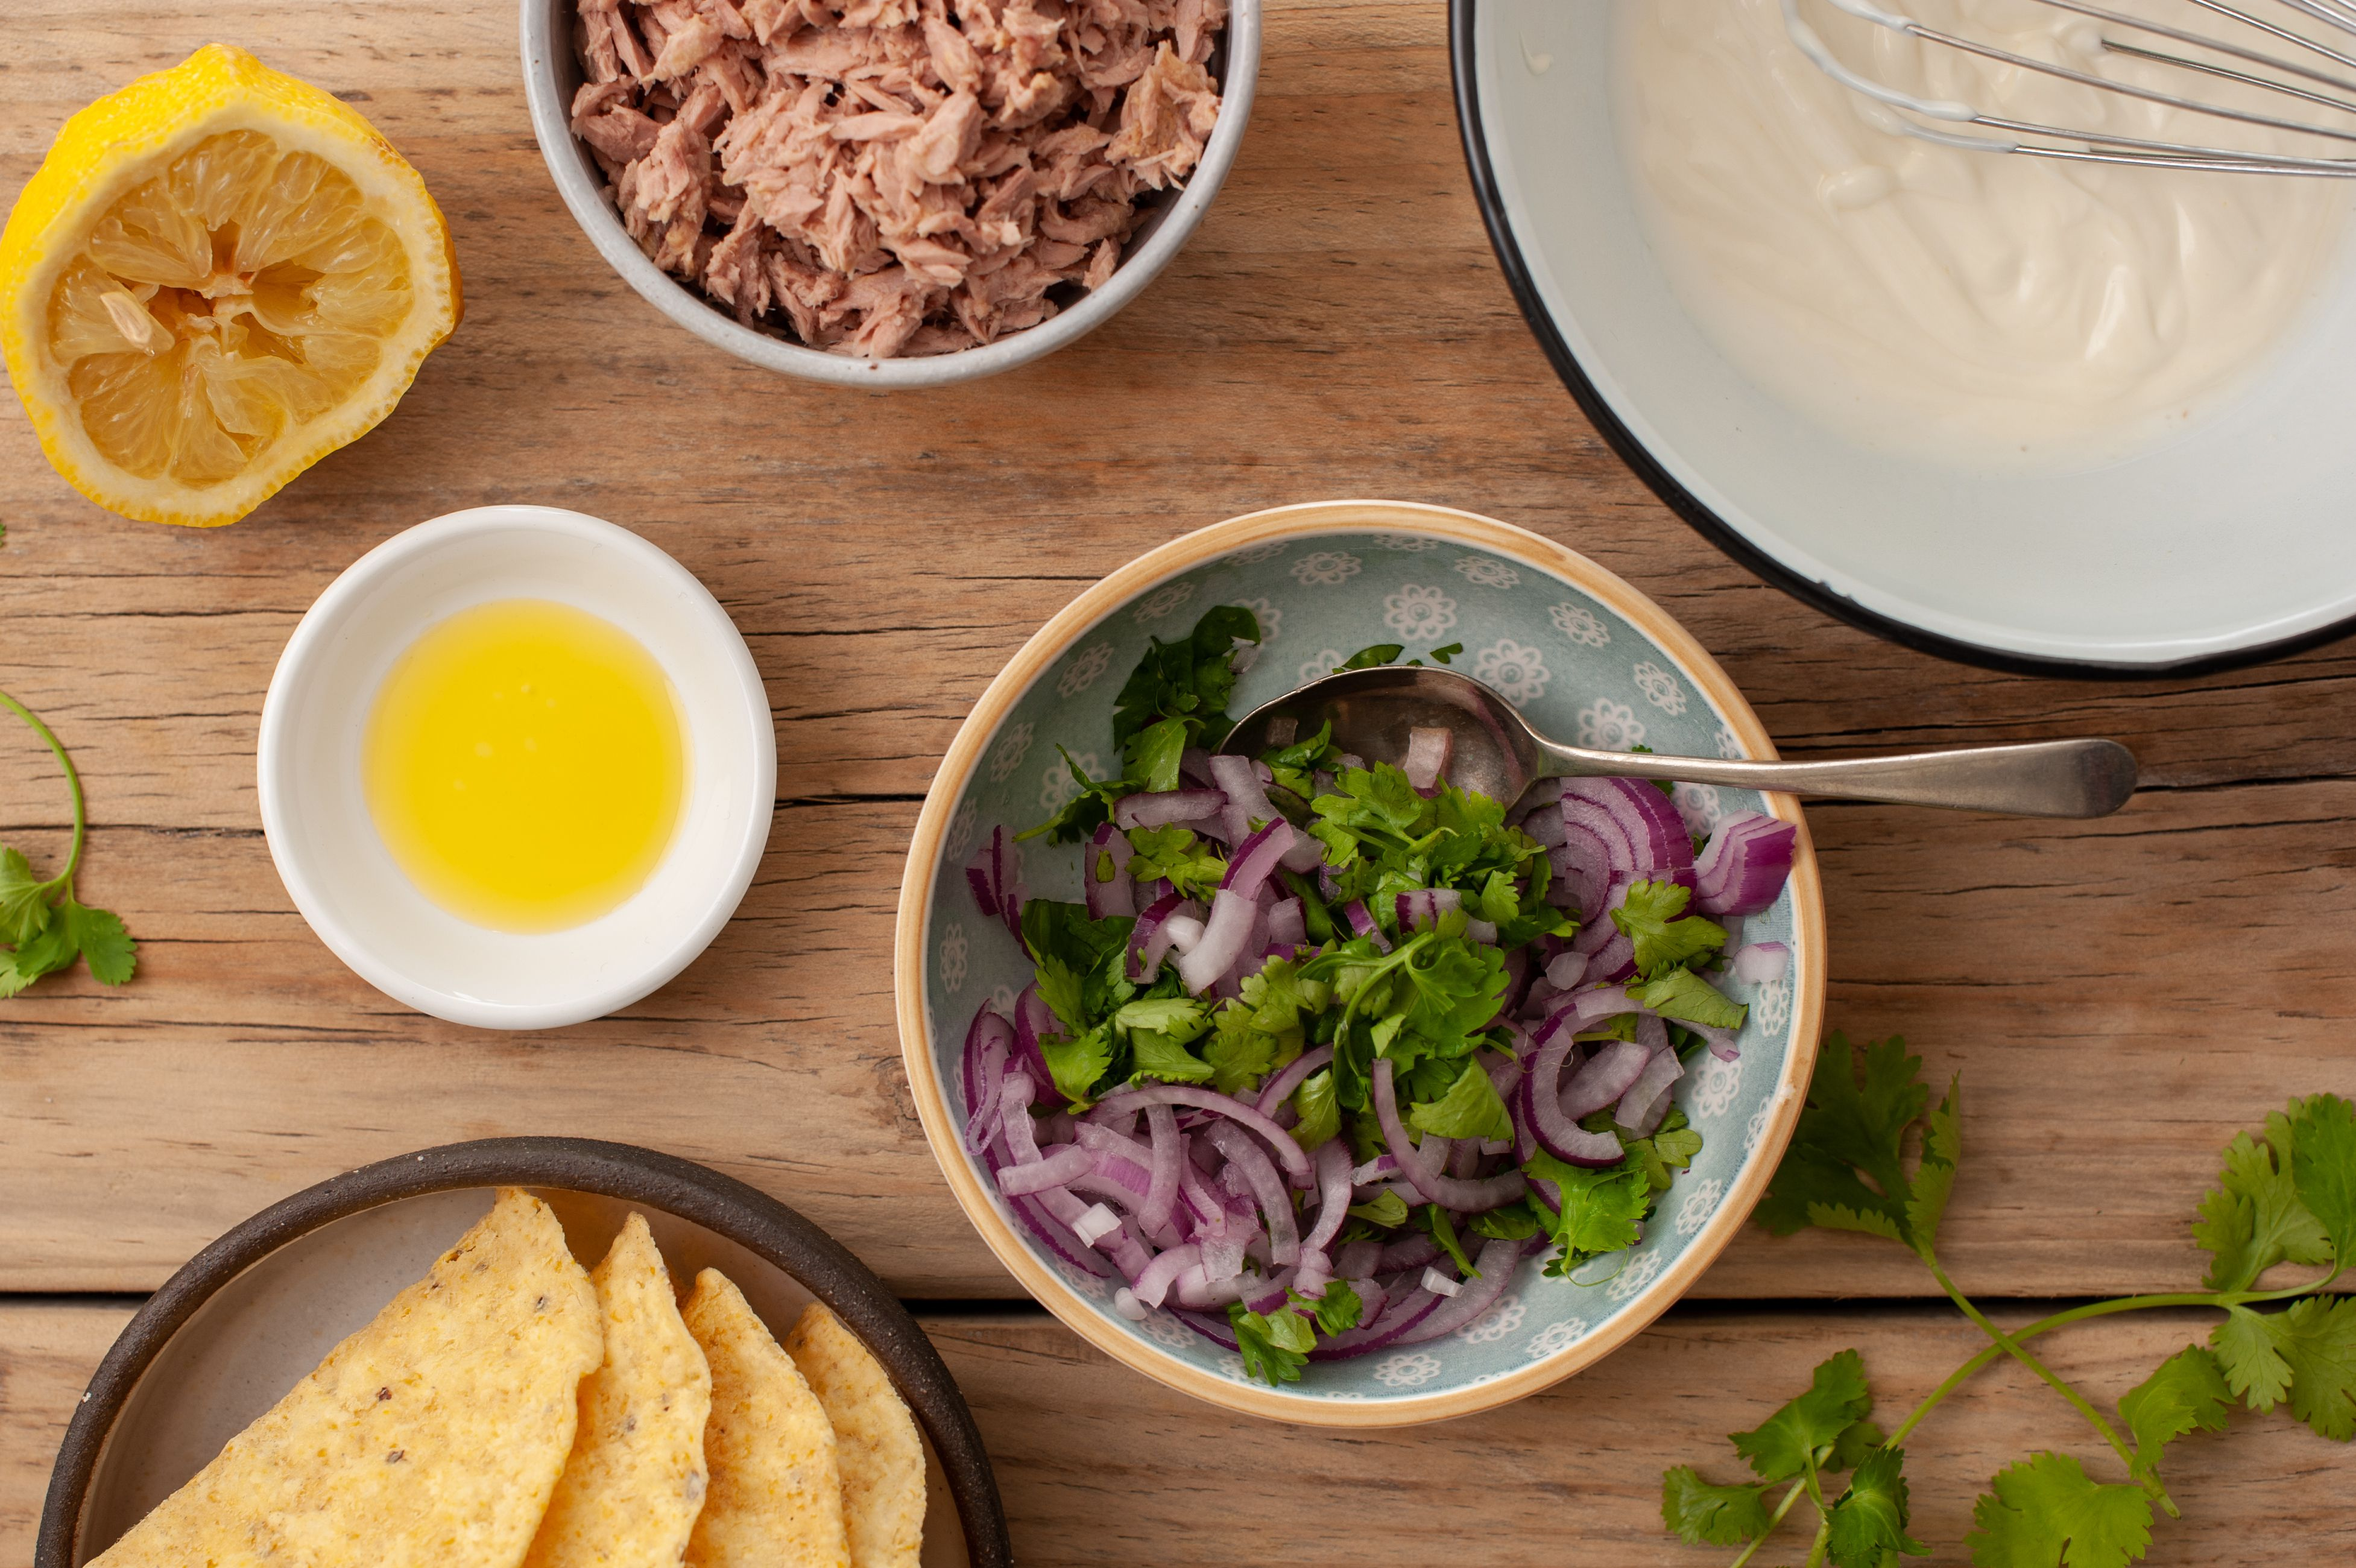 Bowl of onions and cilantro, surrounded by taco ingredients